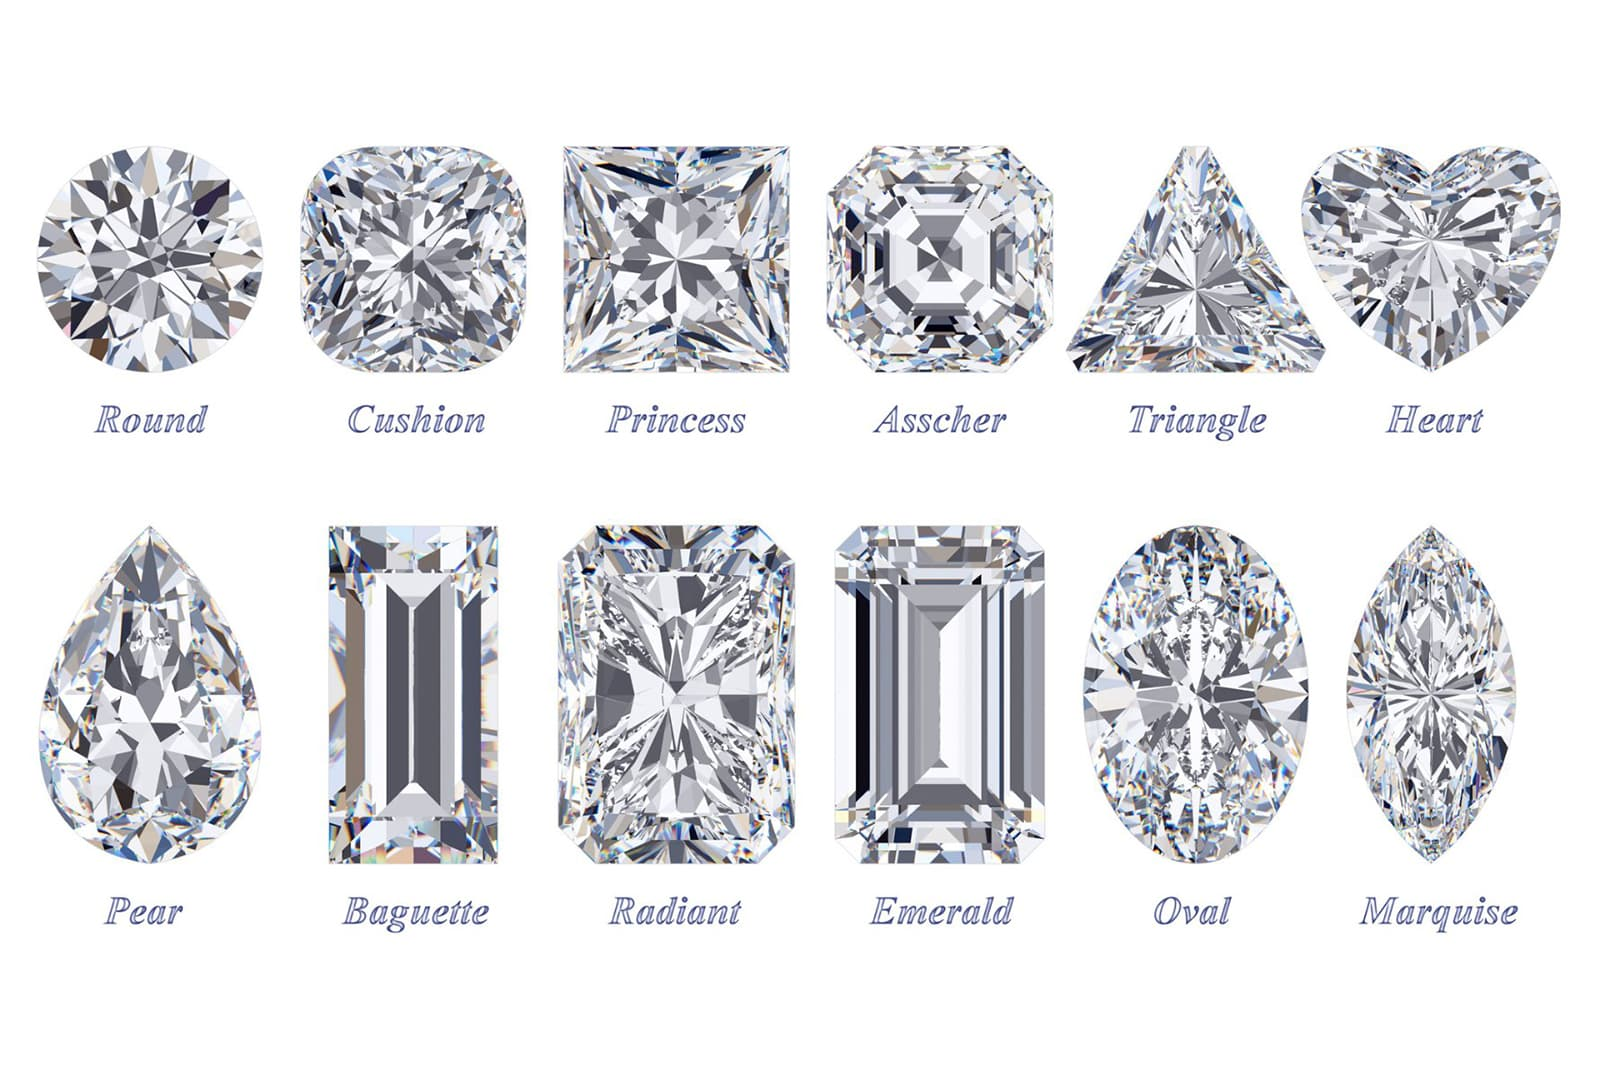 A selection of the most popular diamond and gemstone cuts